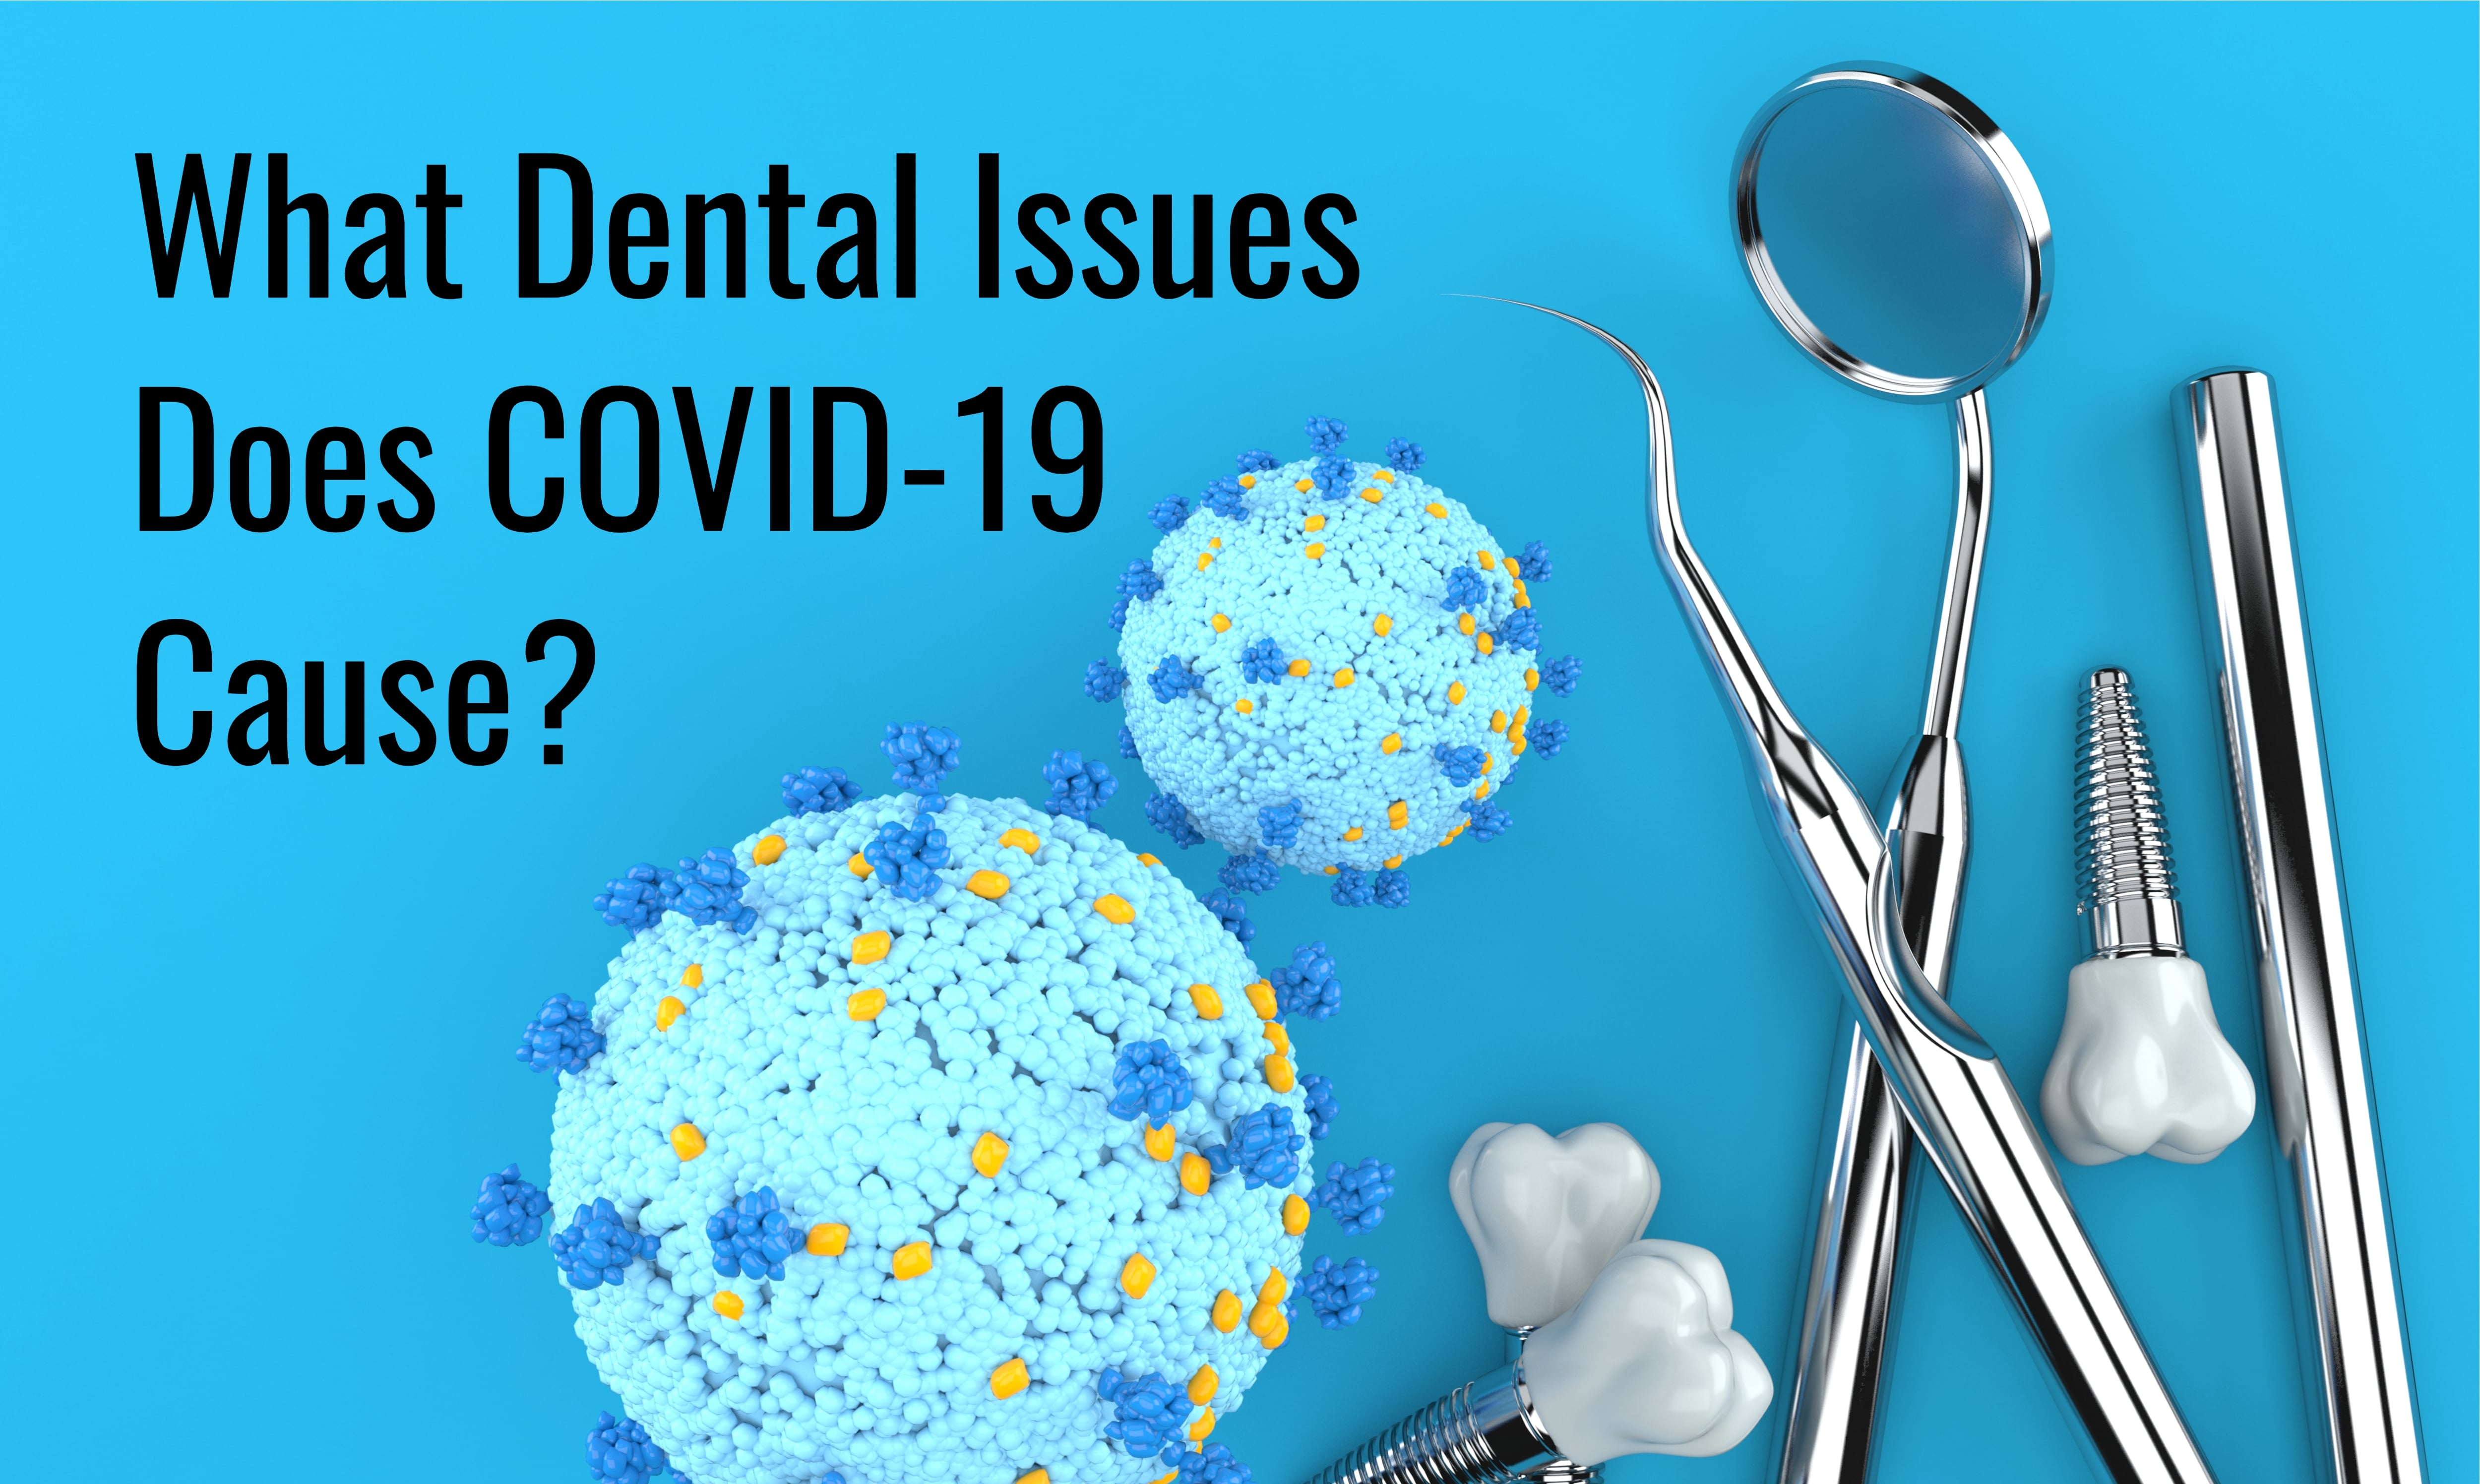 What Dental Issues Does COVID-19 Cause?